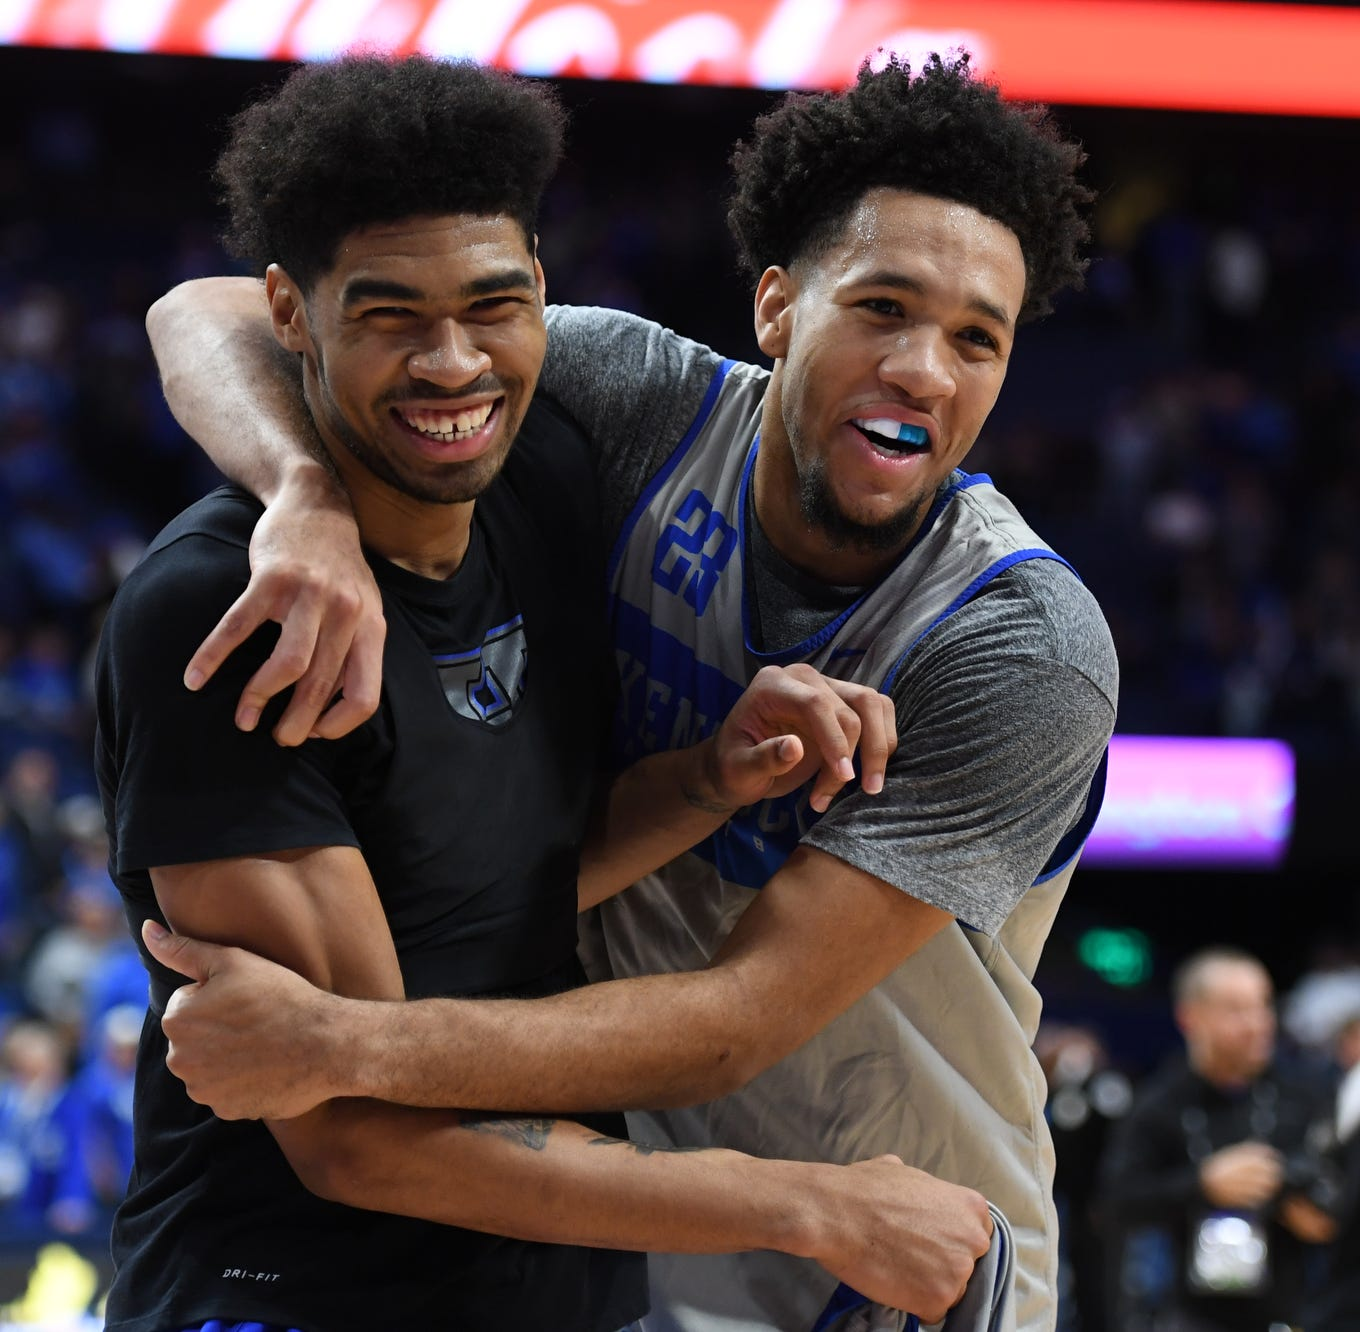 Kentucky's EJ Montgomery and Nick Richards face tough NBA draft decisions